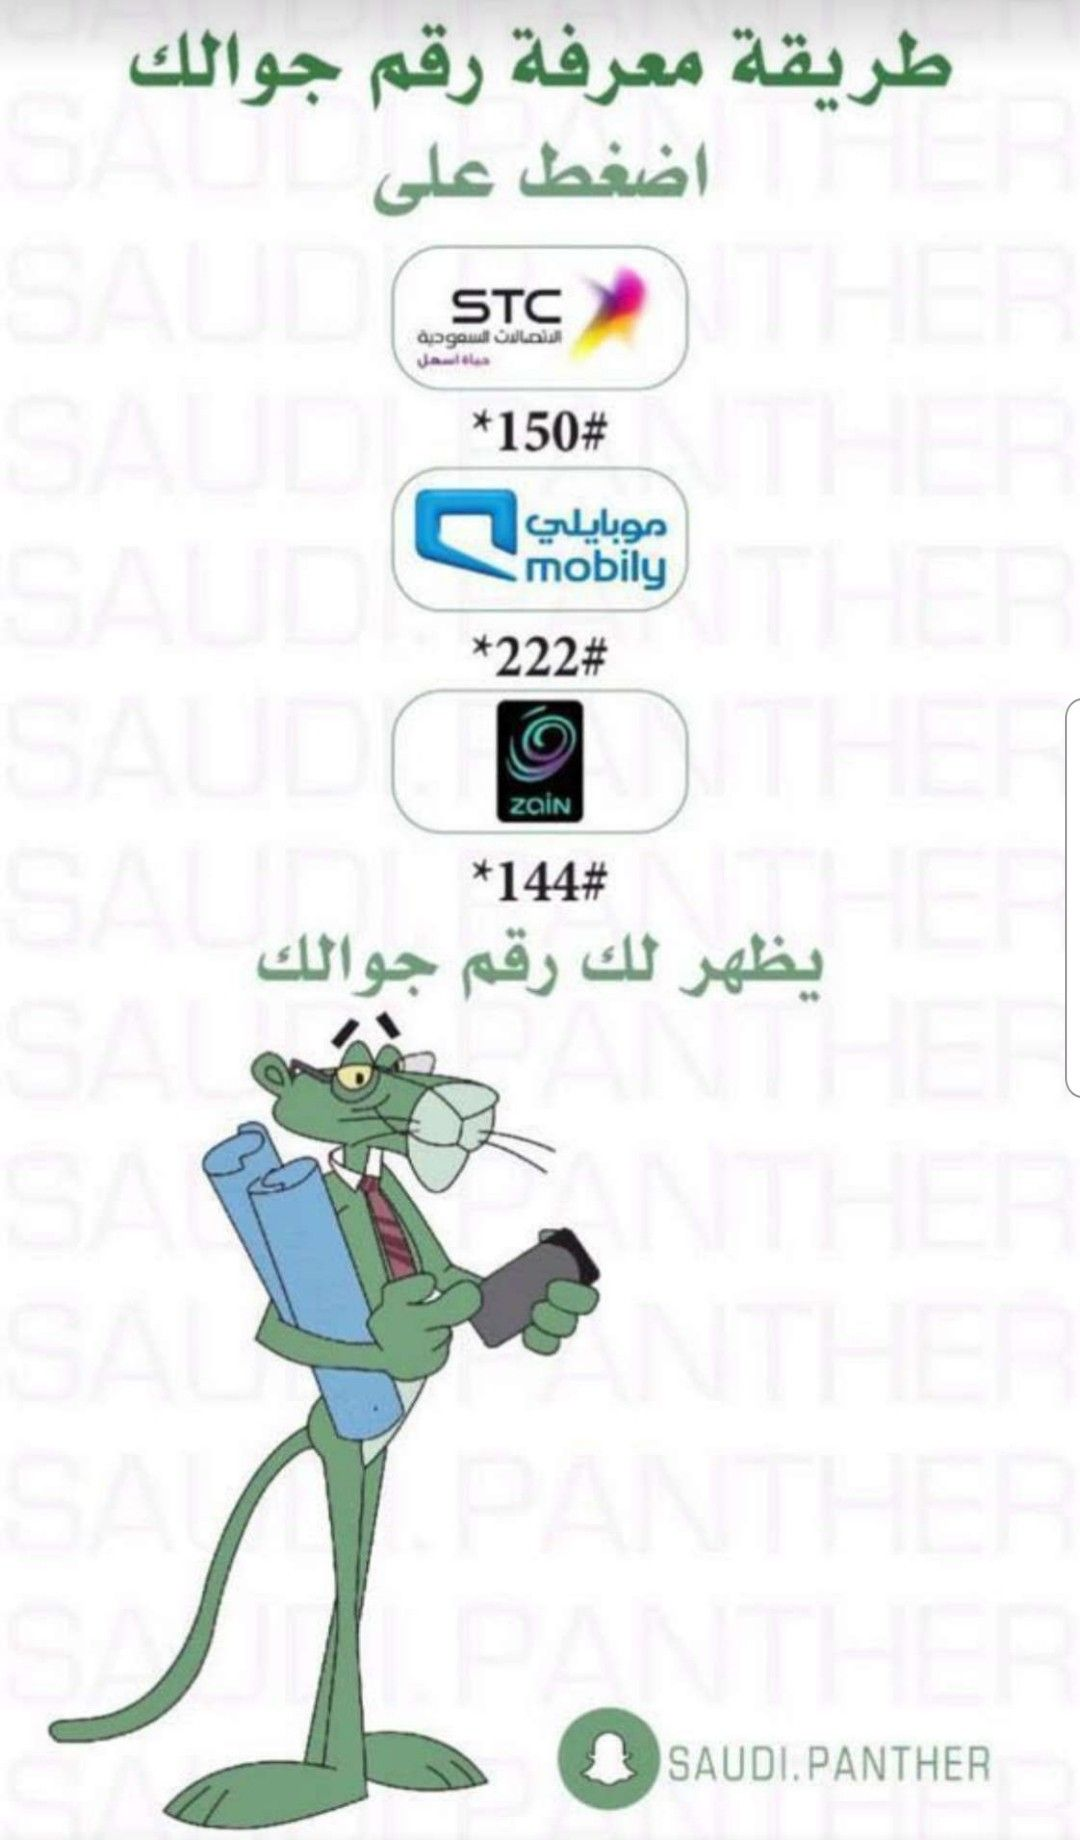 Pin By هبه محمد On برامج مفيده App Layout Programming Apps Application Iphone